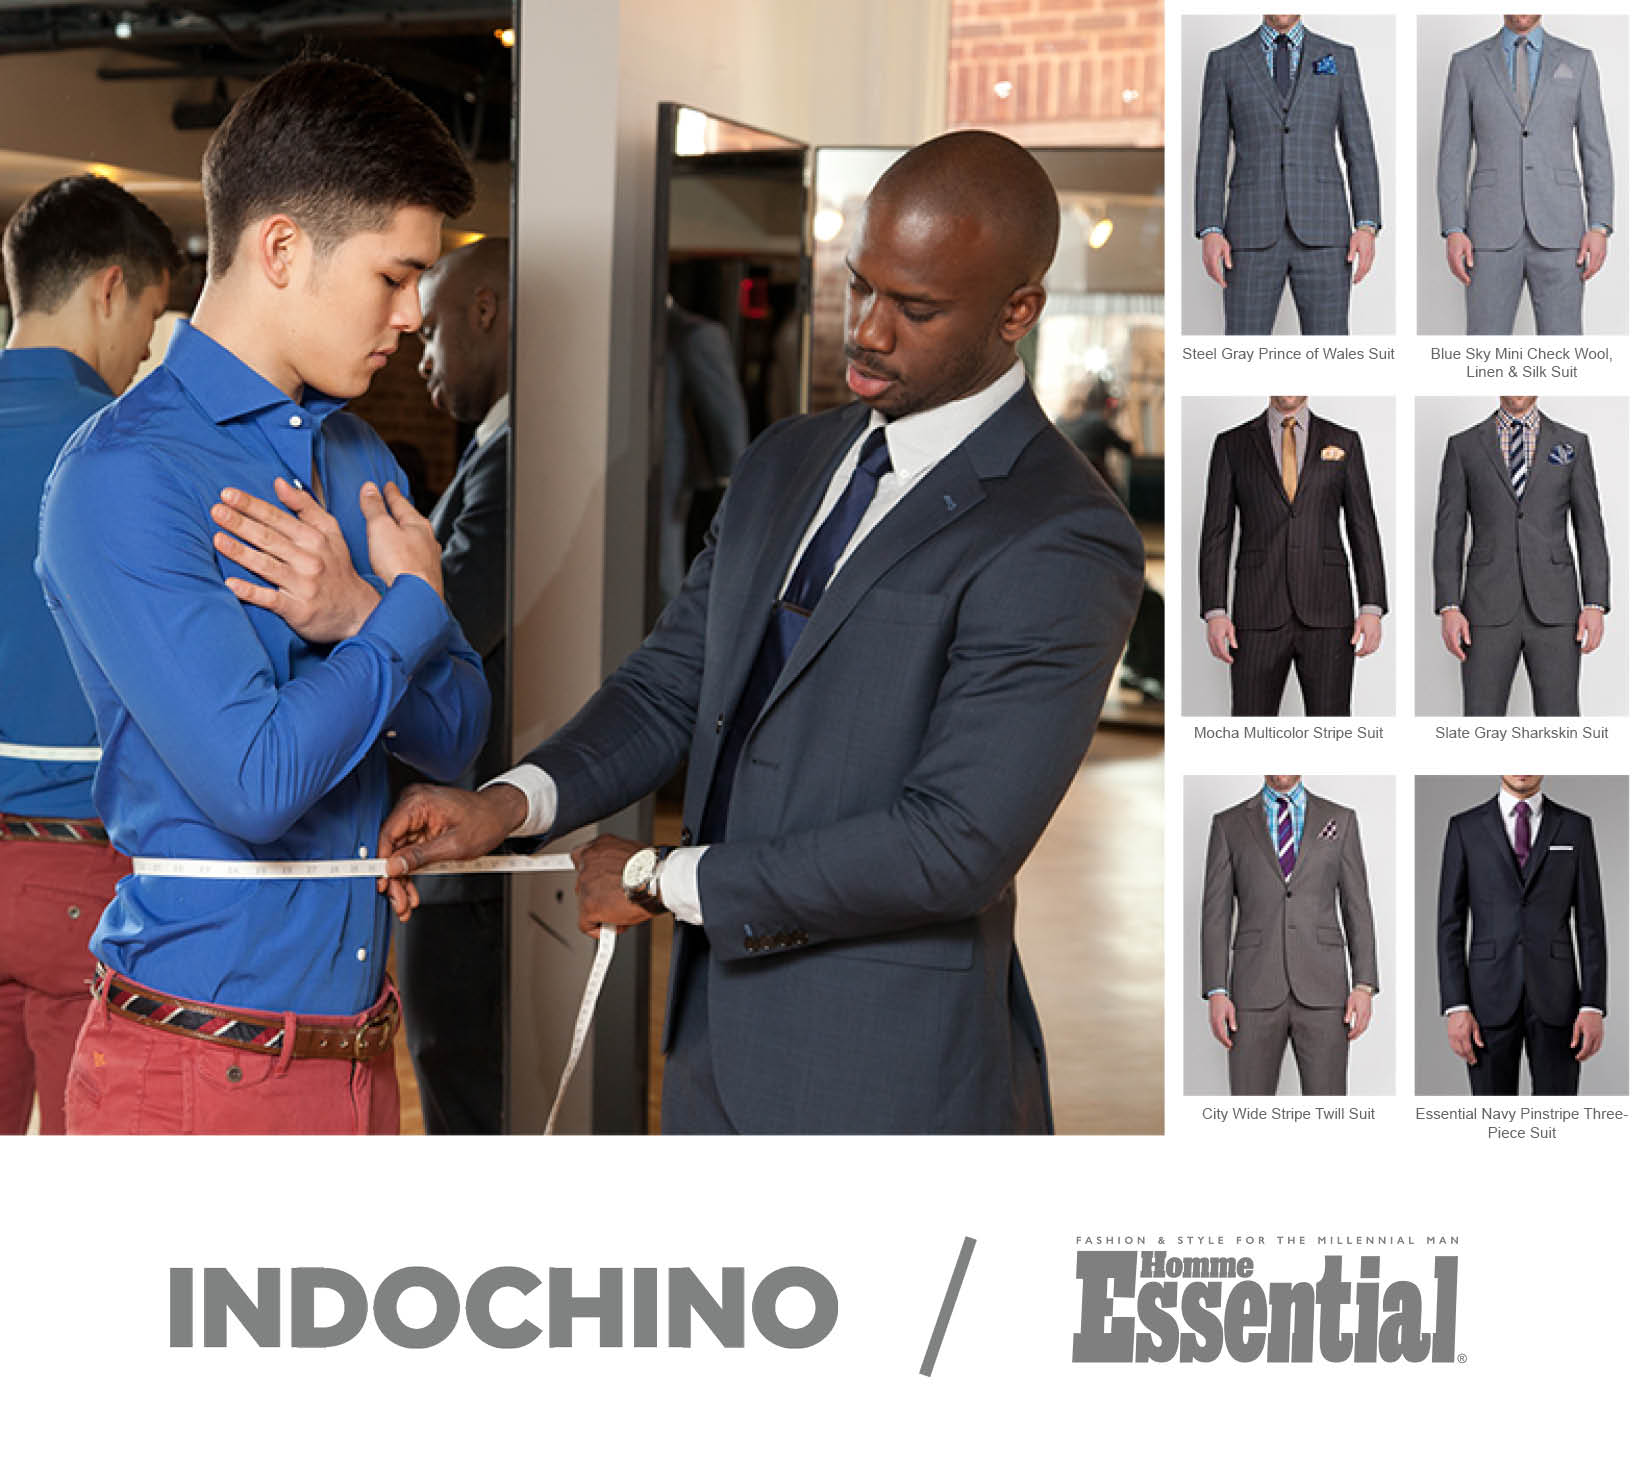 Indochino giveaway 790x700_150dpi_3